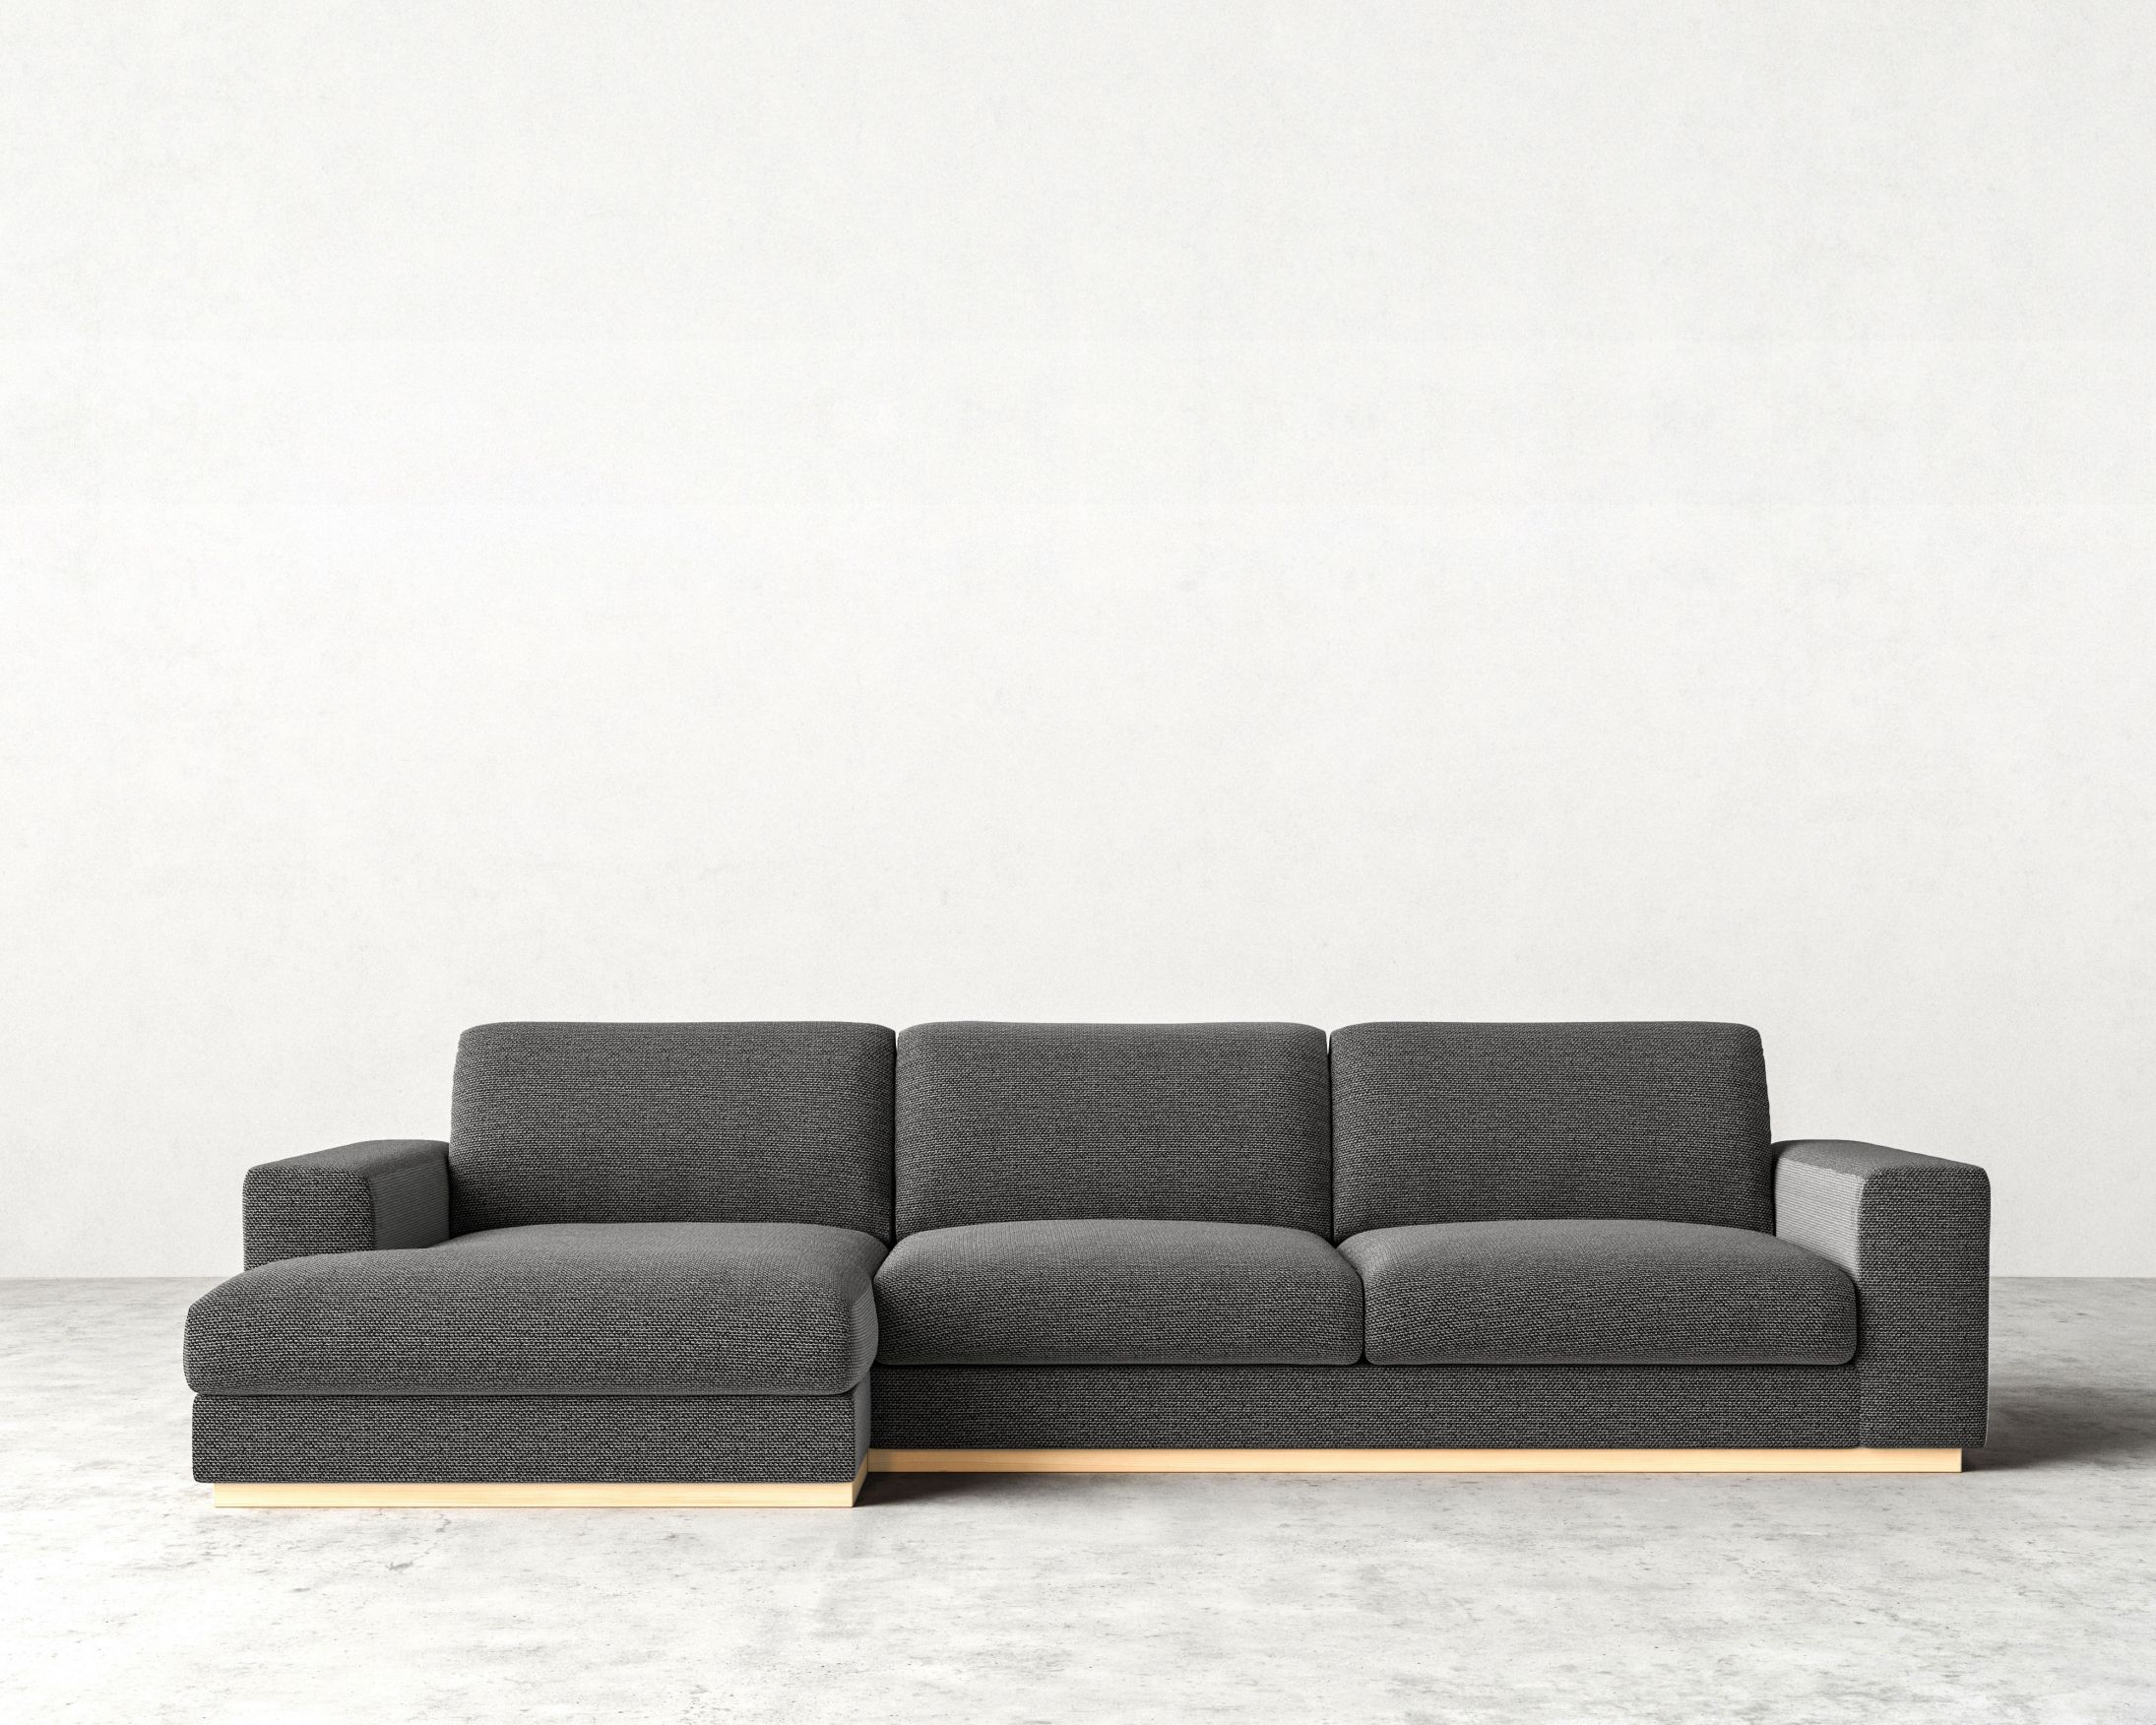 Are.na / Noah-sectional-modern-tweed-charcoal-left-chaise.jpg